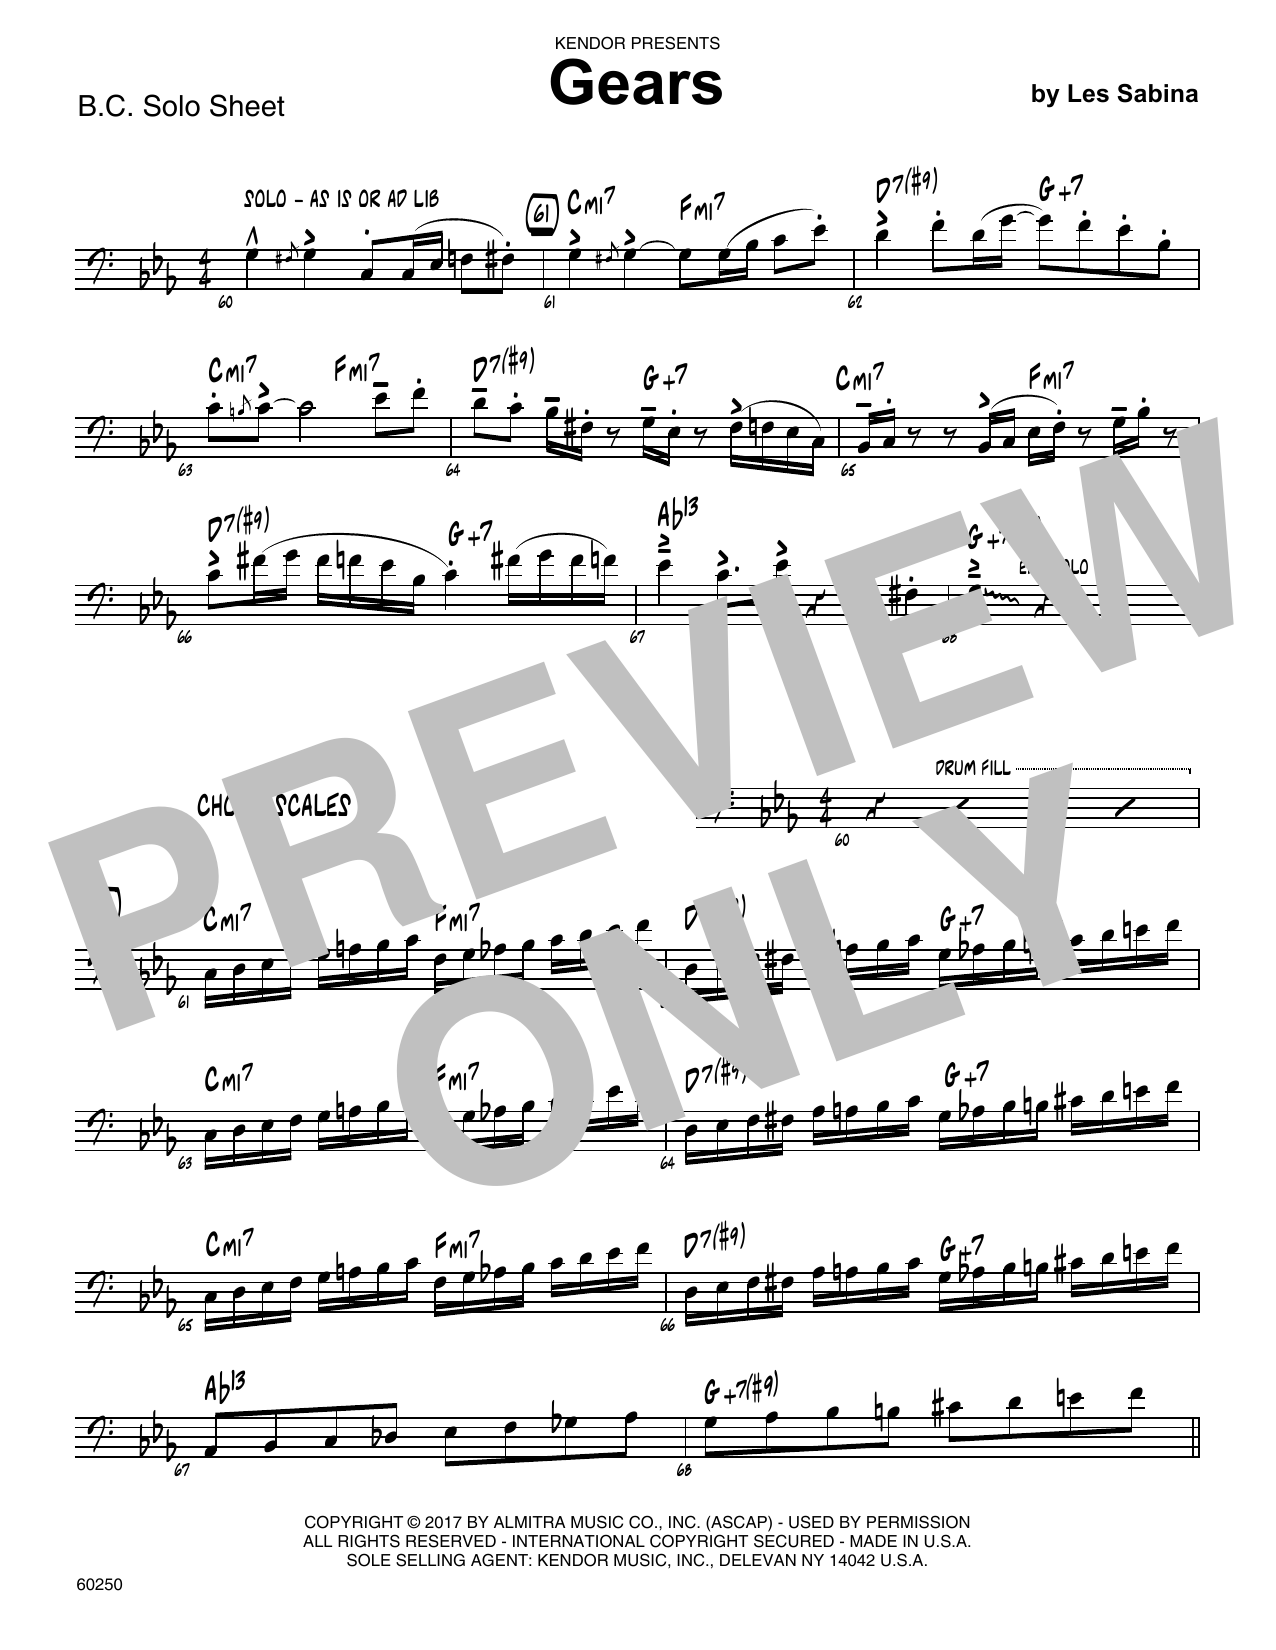 Les Sabina Gears - Sample Solo - Bass Clef Instr. sheet music notes printable PDF score